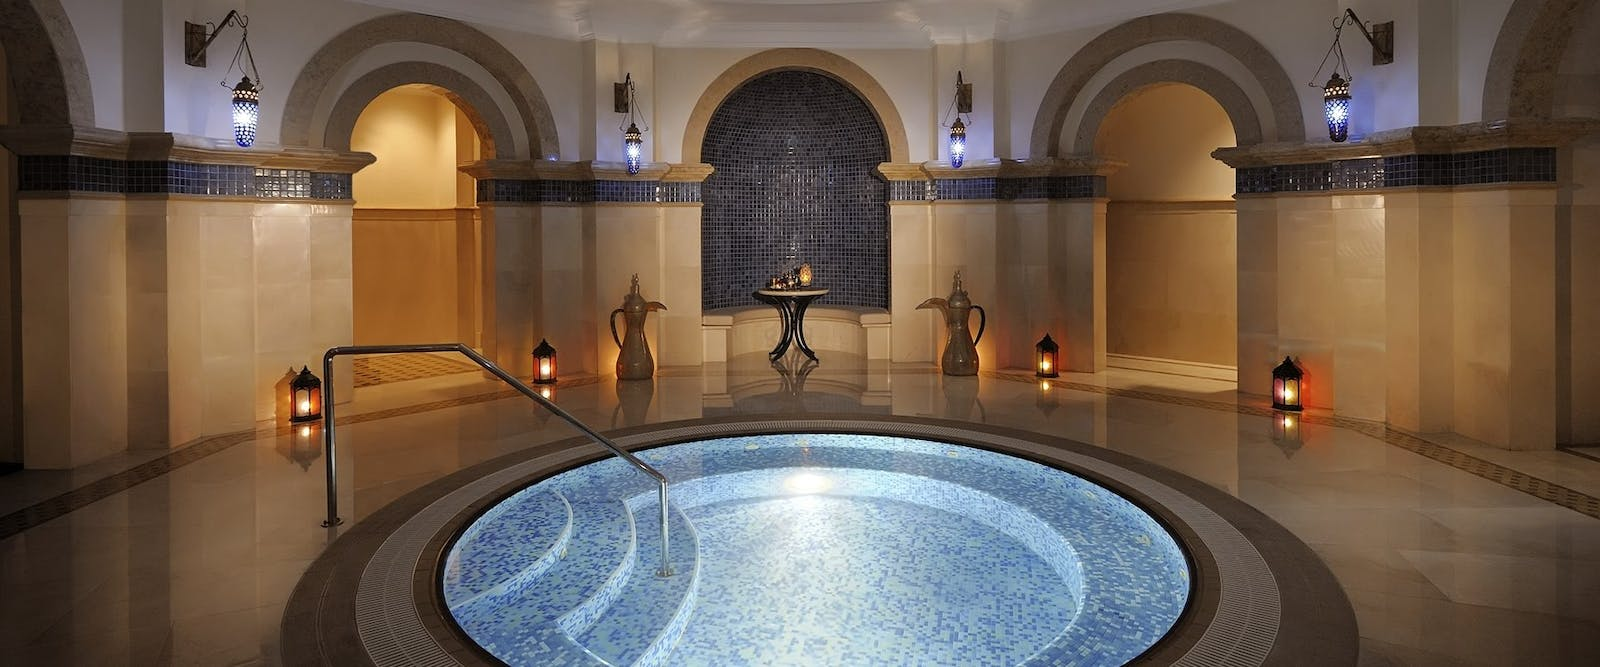 Wellness Spa at One&Only Royal Mirage - The Residence & Spa, Dubai